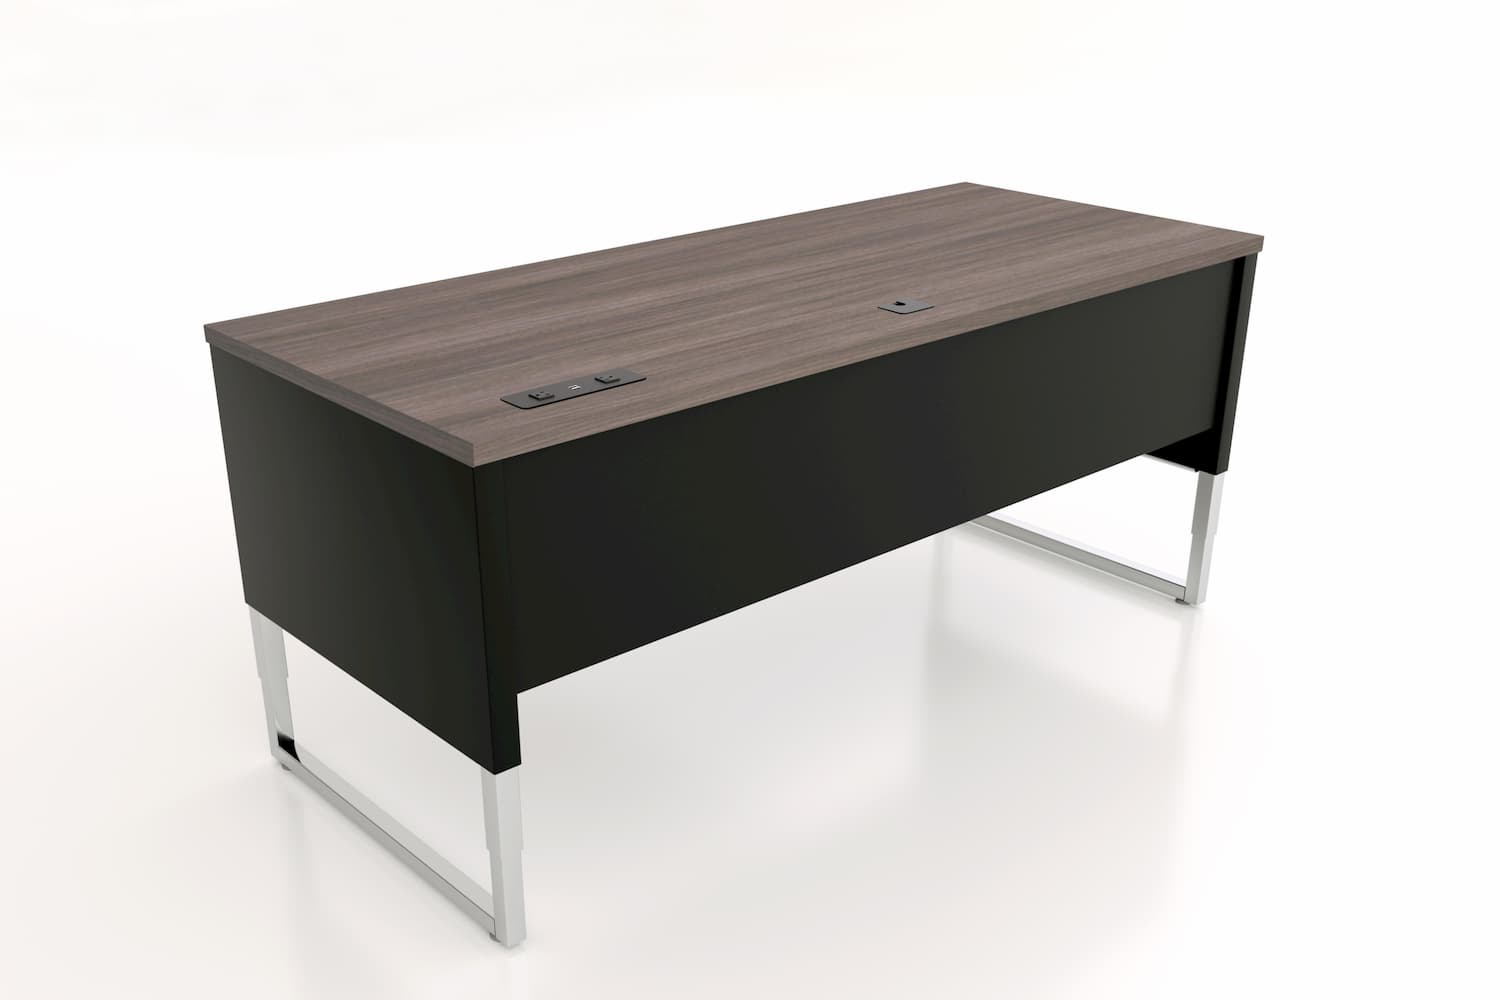 Advent-Desk-ADV-7230-BK-Custom-Top-12-Back